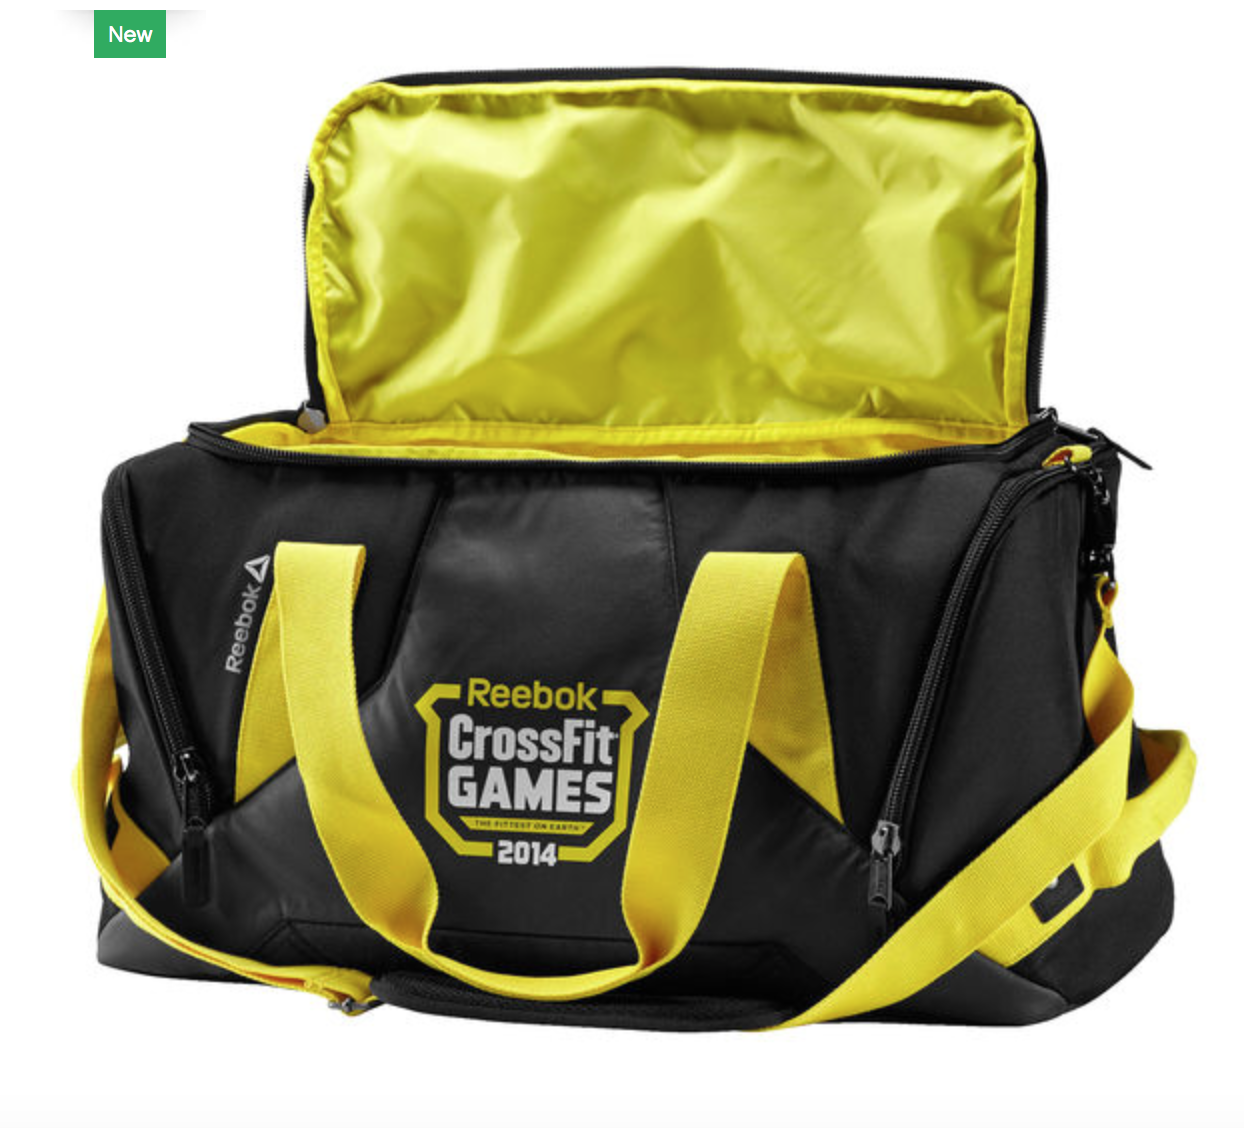 Reebok CrossFit 2014 Games Duffle Grip Bag